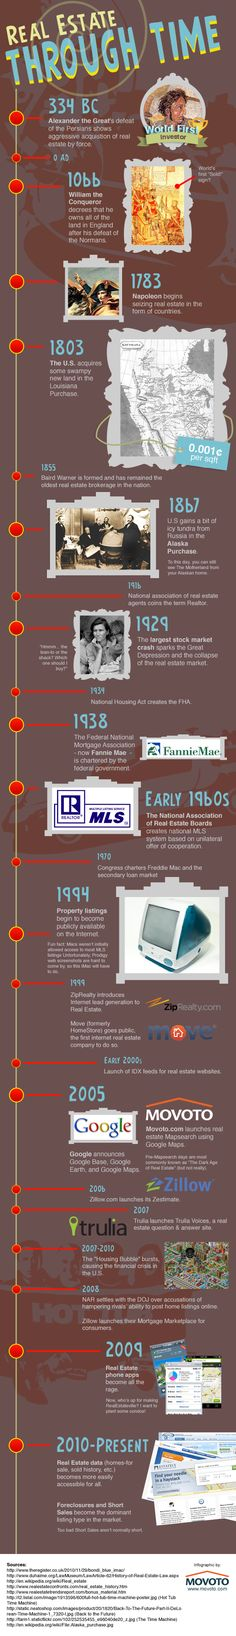 Real Estate Through Time Infographic